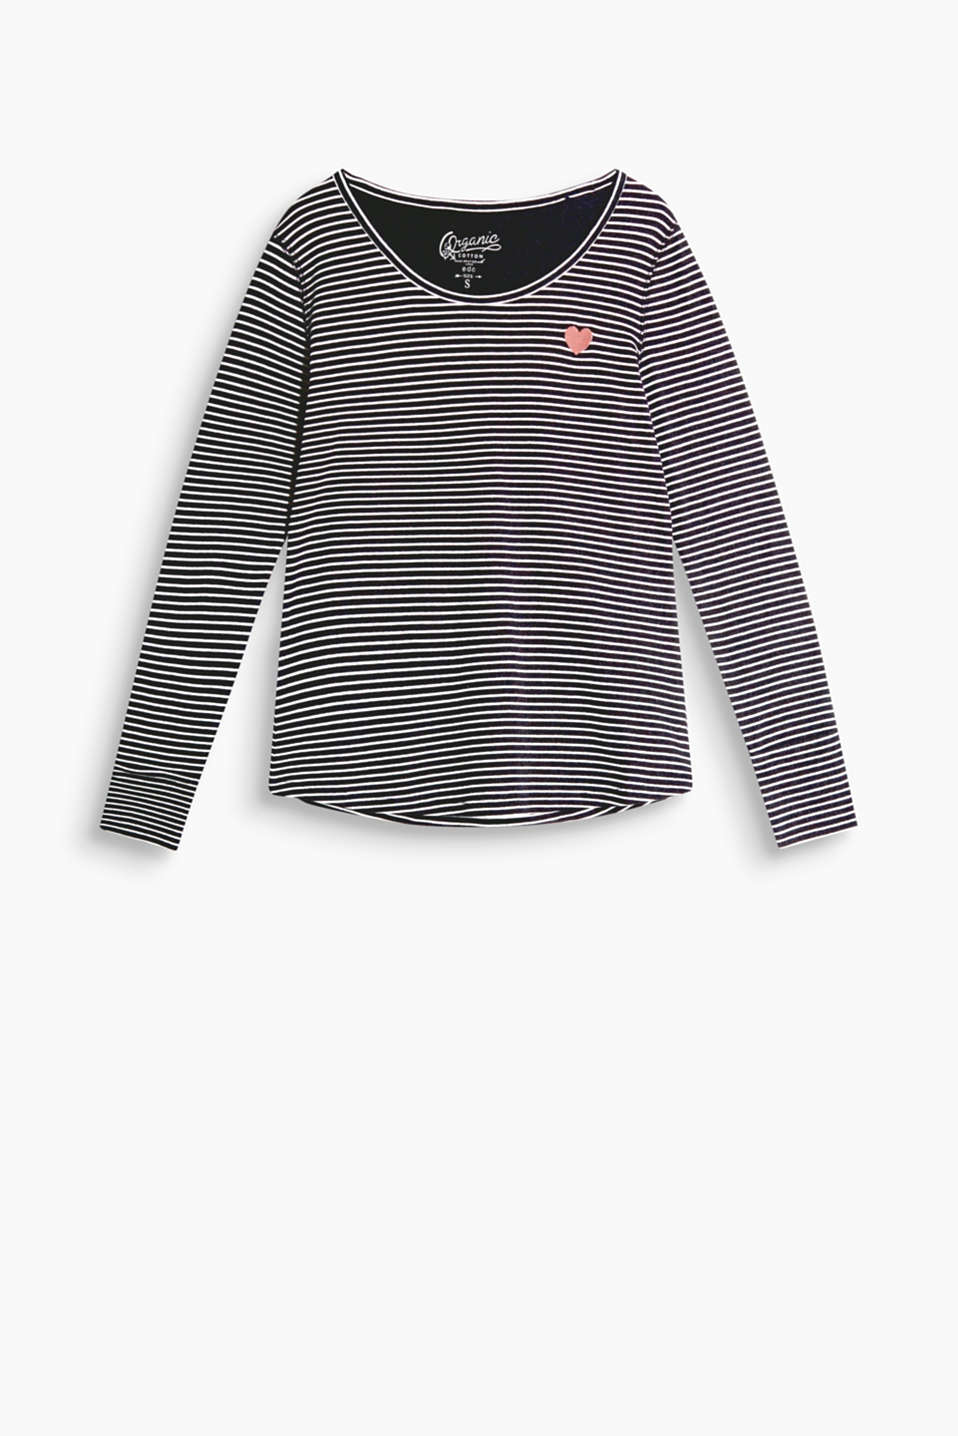 Soft striped long sleeve top with heart appliqué, organic cotton blend